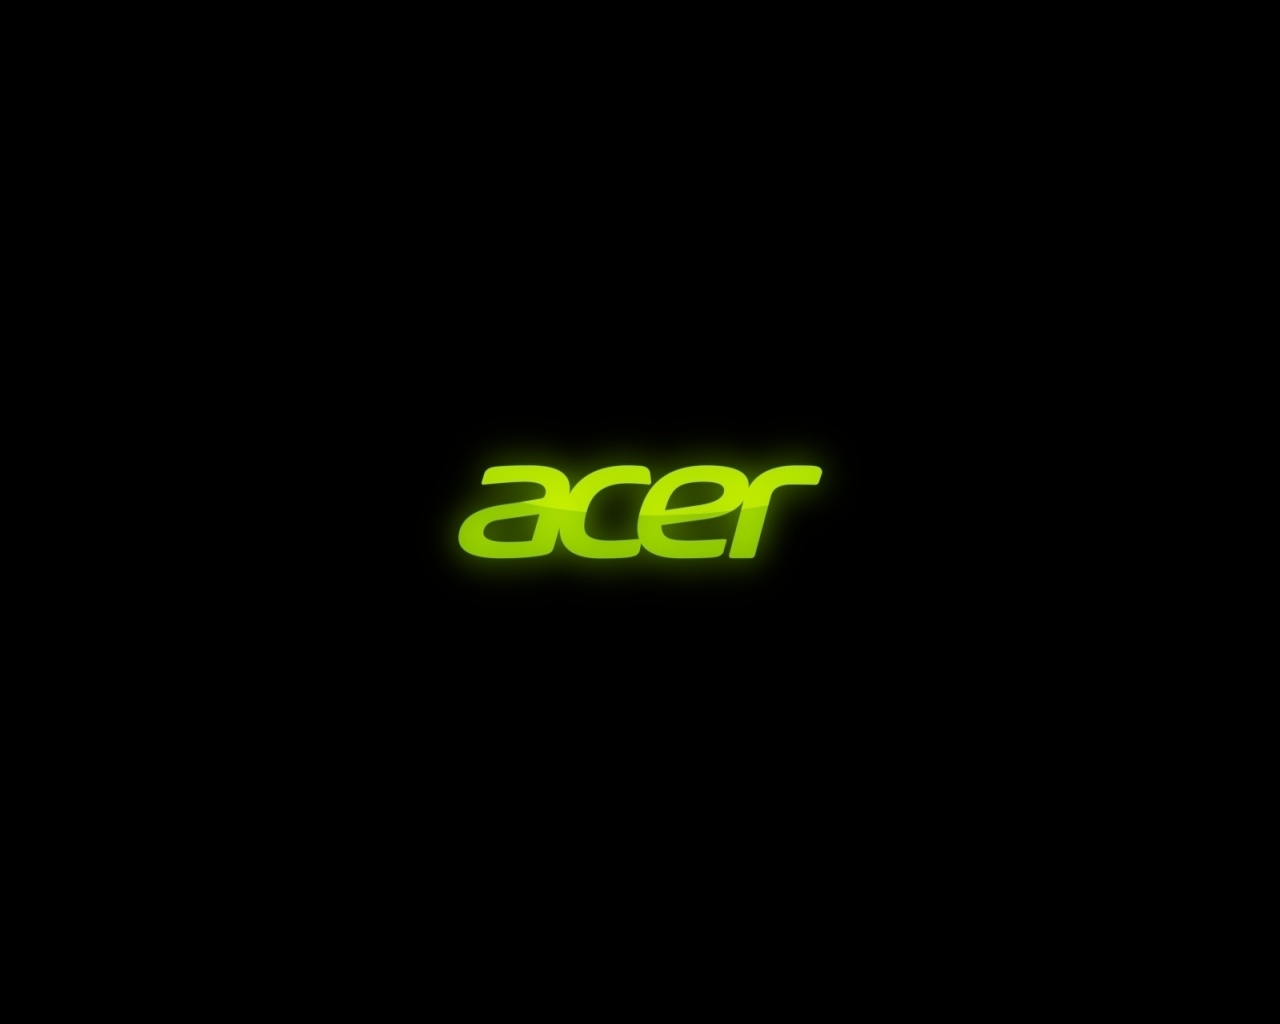 Download Wallpaper 1280x1024 Acer, Firm, Green, Black 1280x1024 HD ...